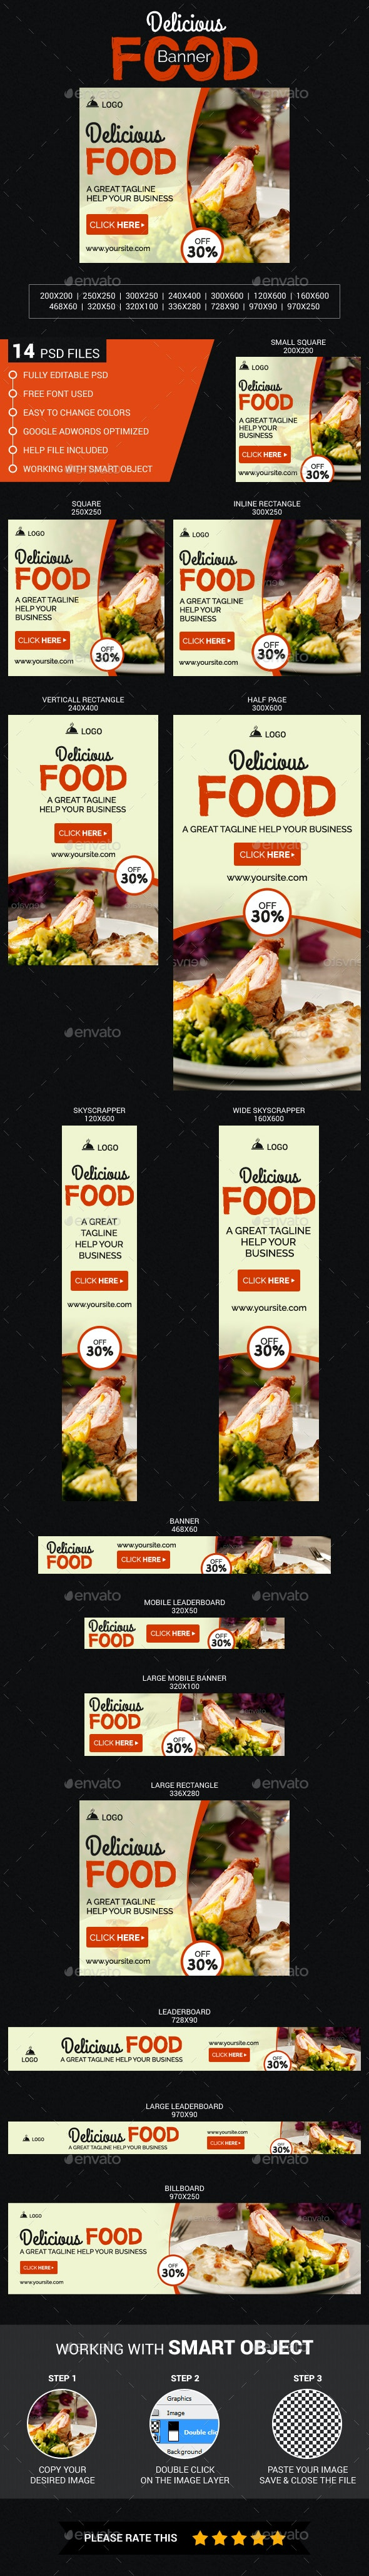 Delicious Food Banner - Banners & Ads Web Elements